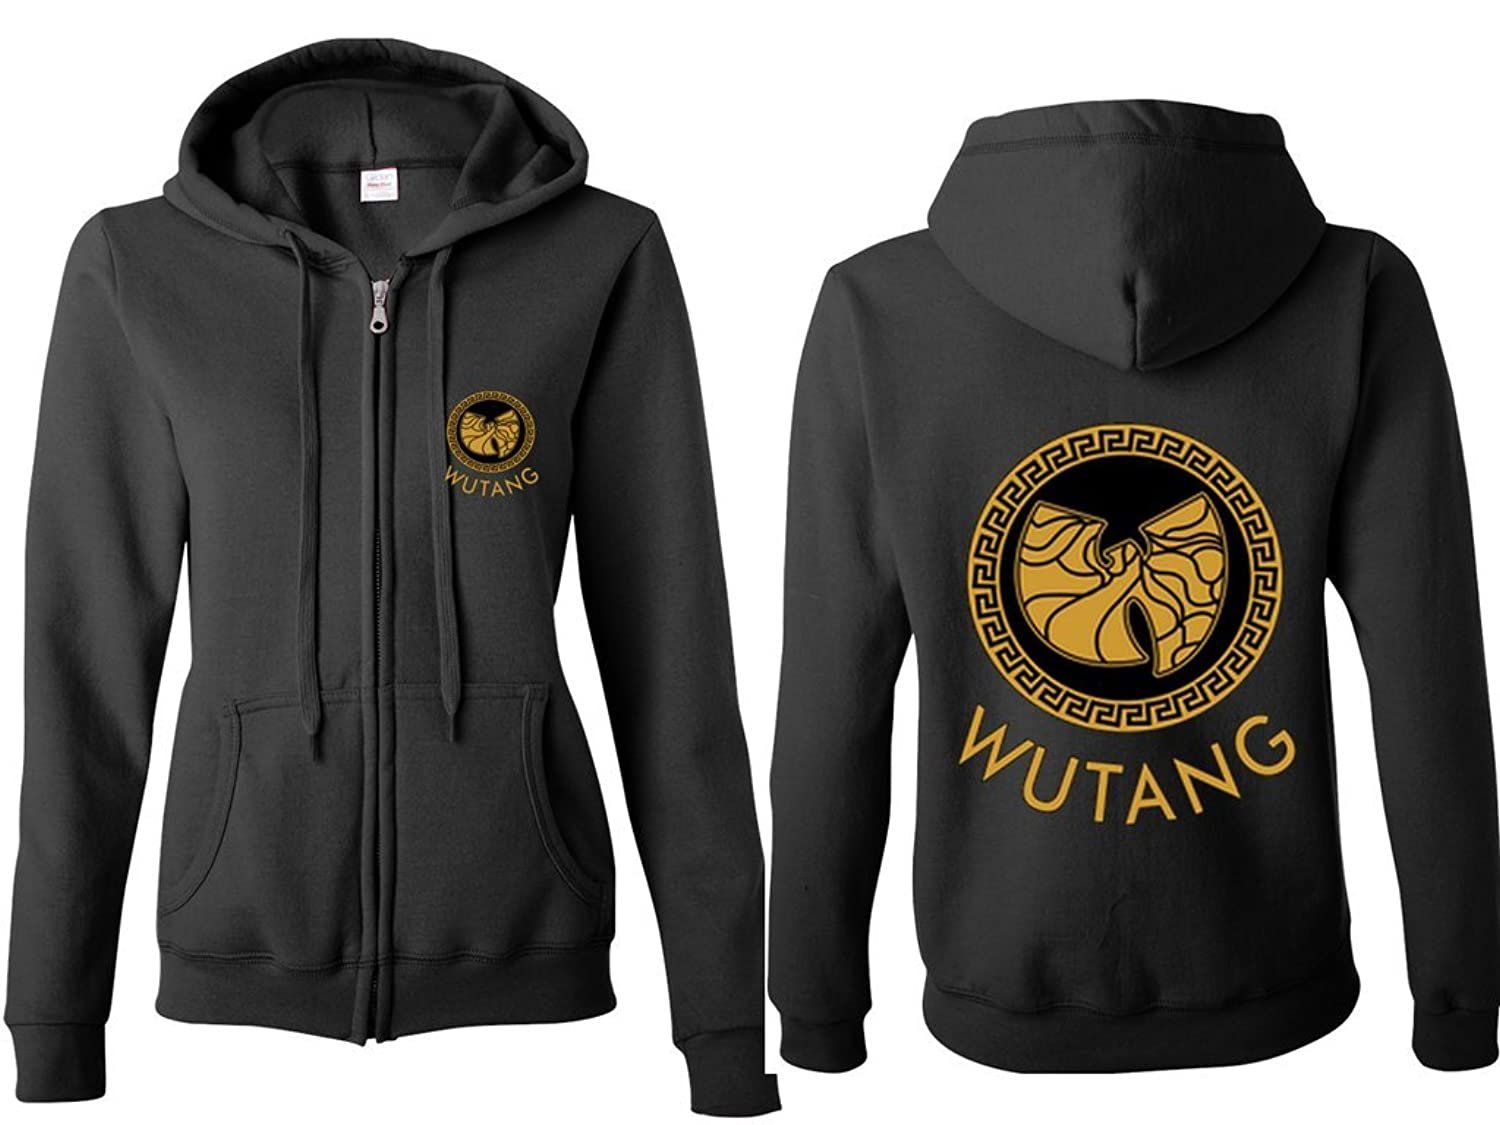 Amazon.com: IZ.80 Womens Wu-Tang Clan VERSACE Full-Zip Hooded Sweatshirt M Black: Clothing